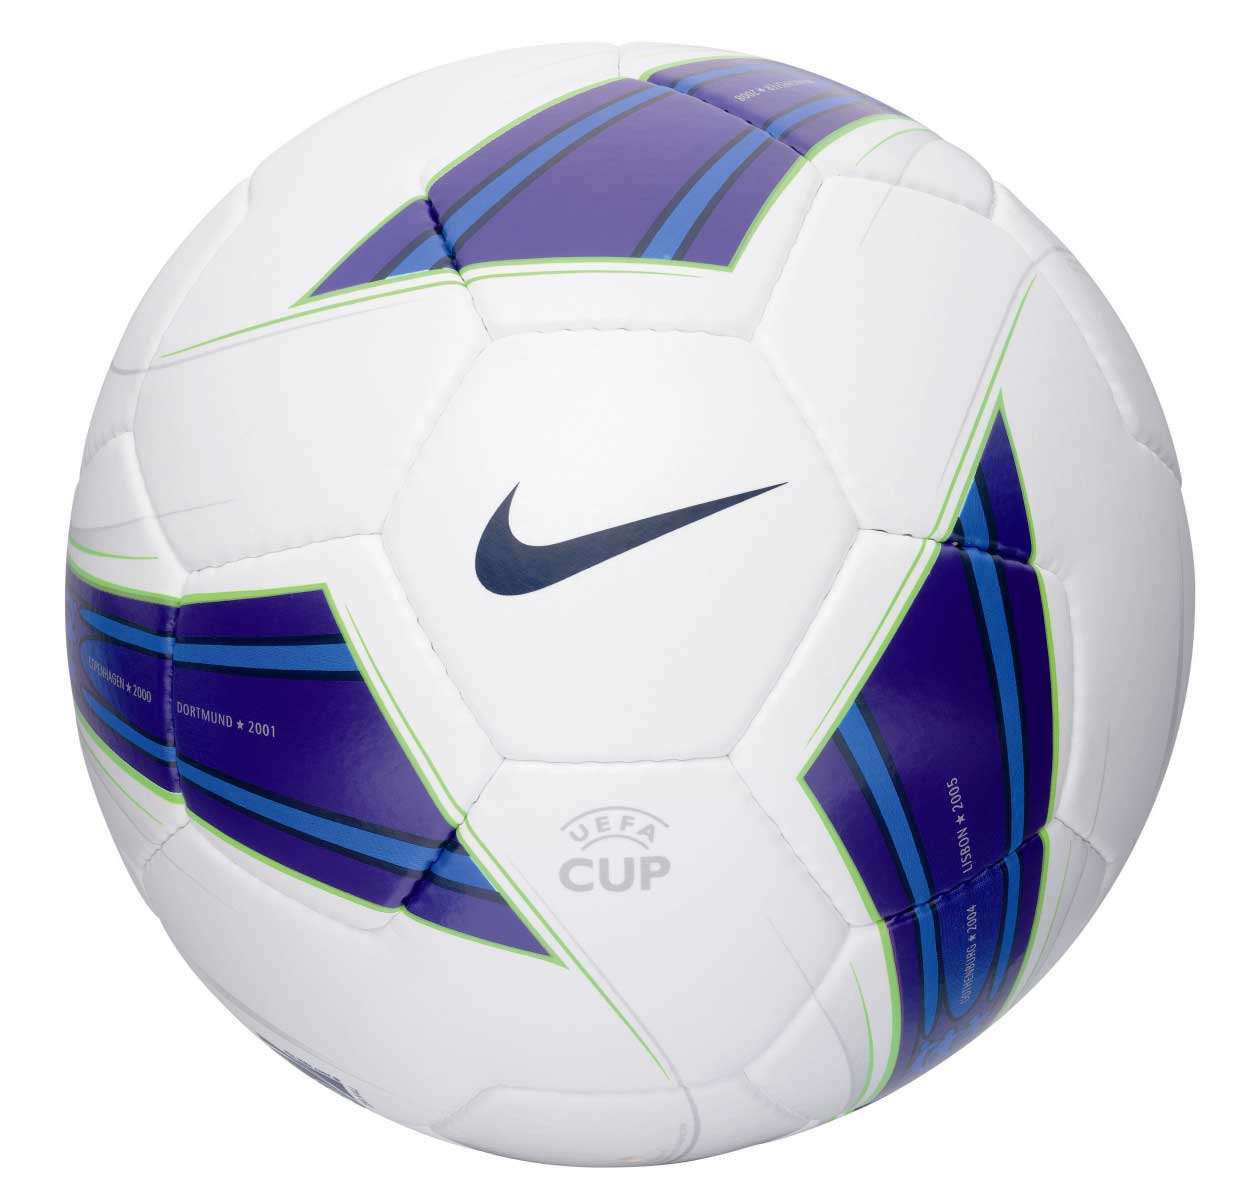 мяч финала Кубка УЕФА 2008 - Nike UEFA Cup Conquest Ball